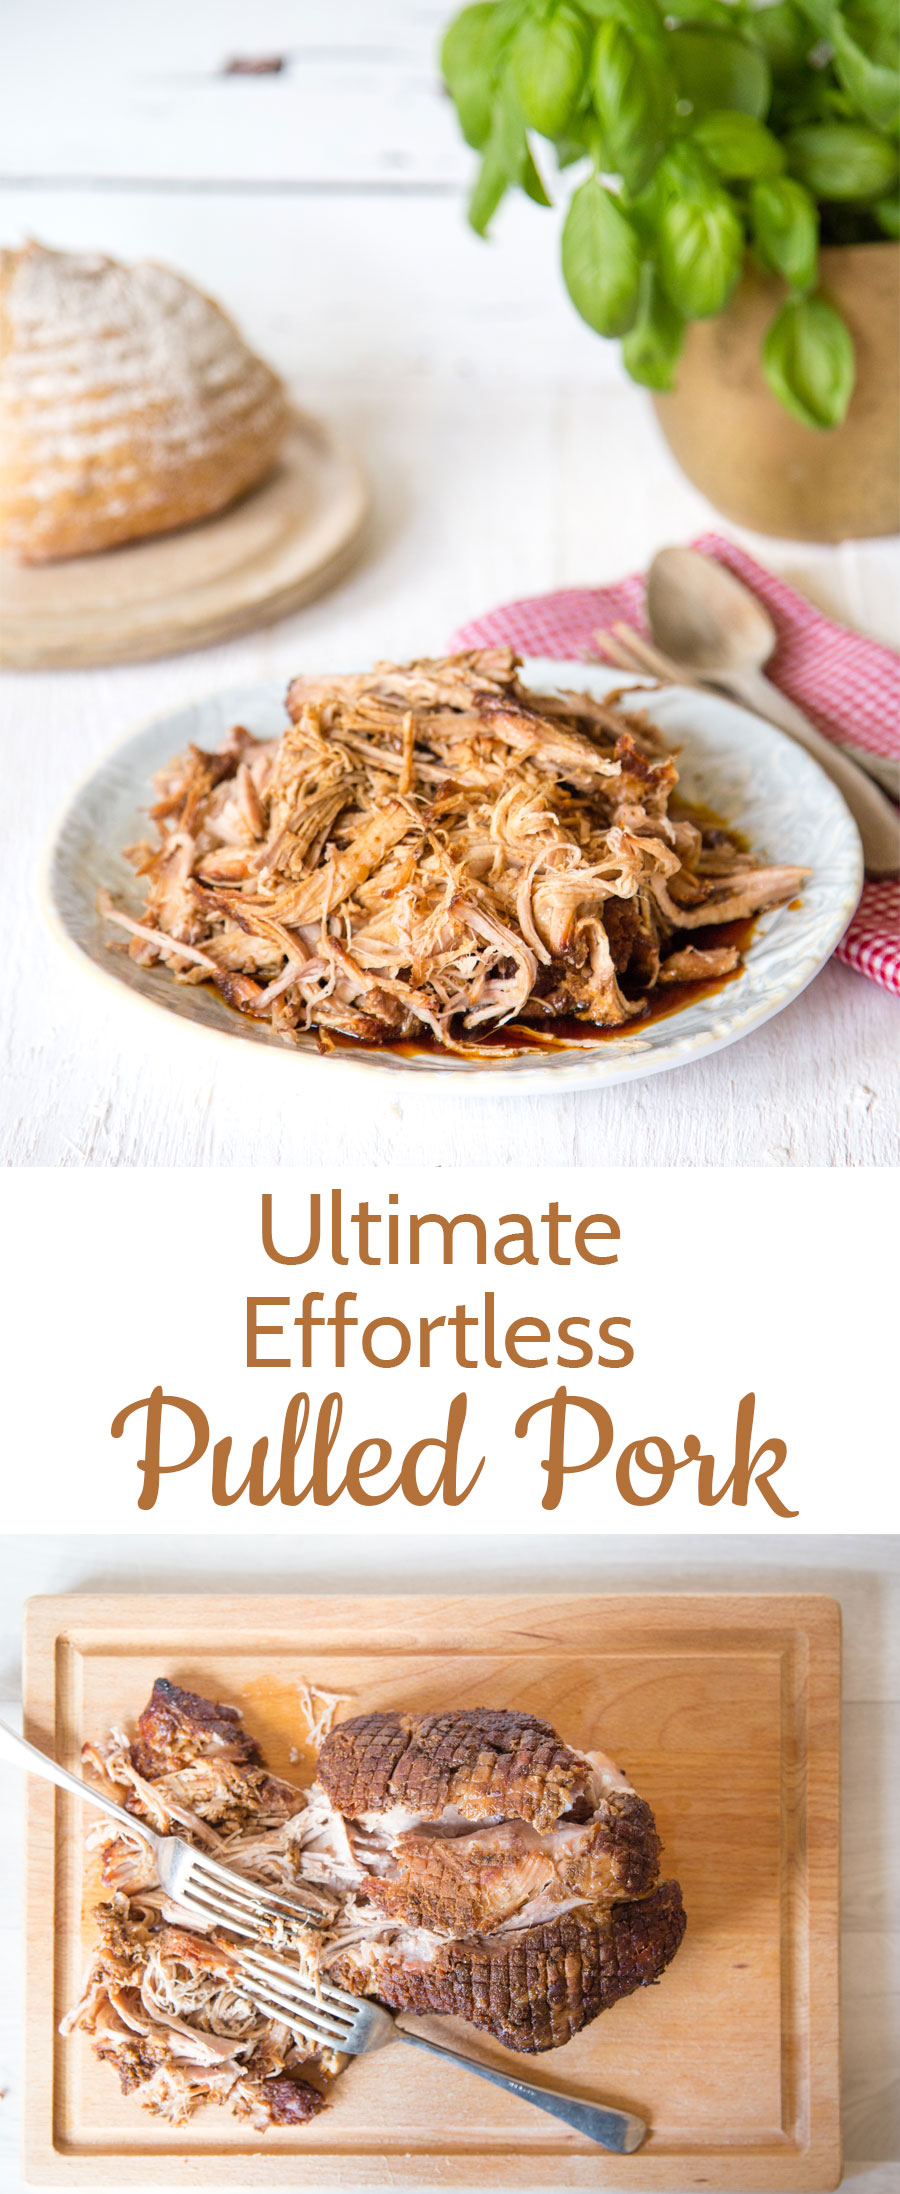 The Ultimate Pulled Pork Slow Cooker Crock Pot. A super simple effortless recipe.